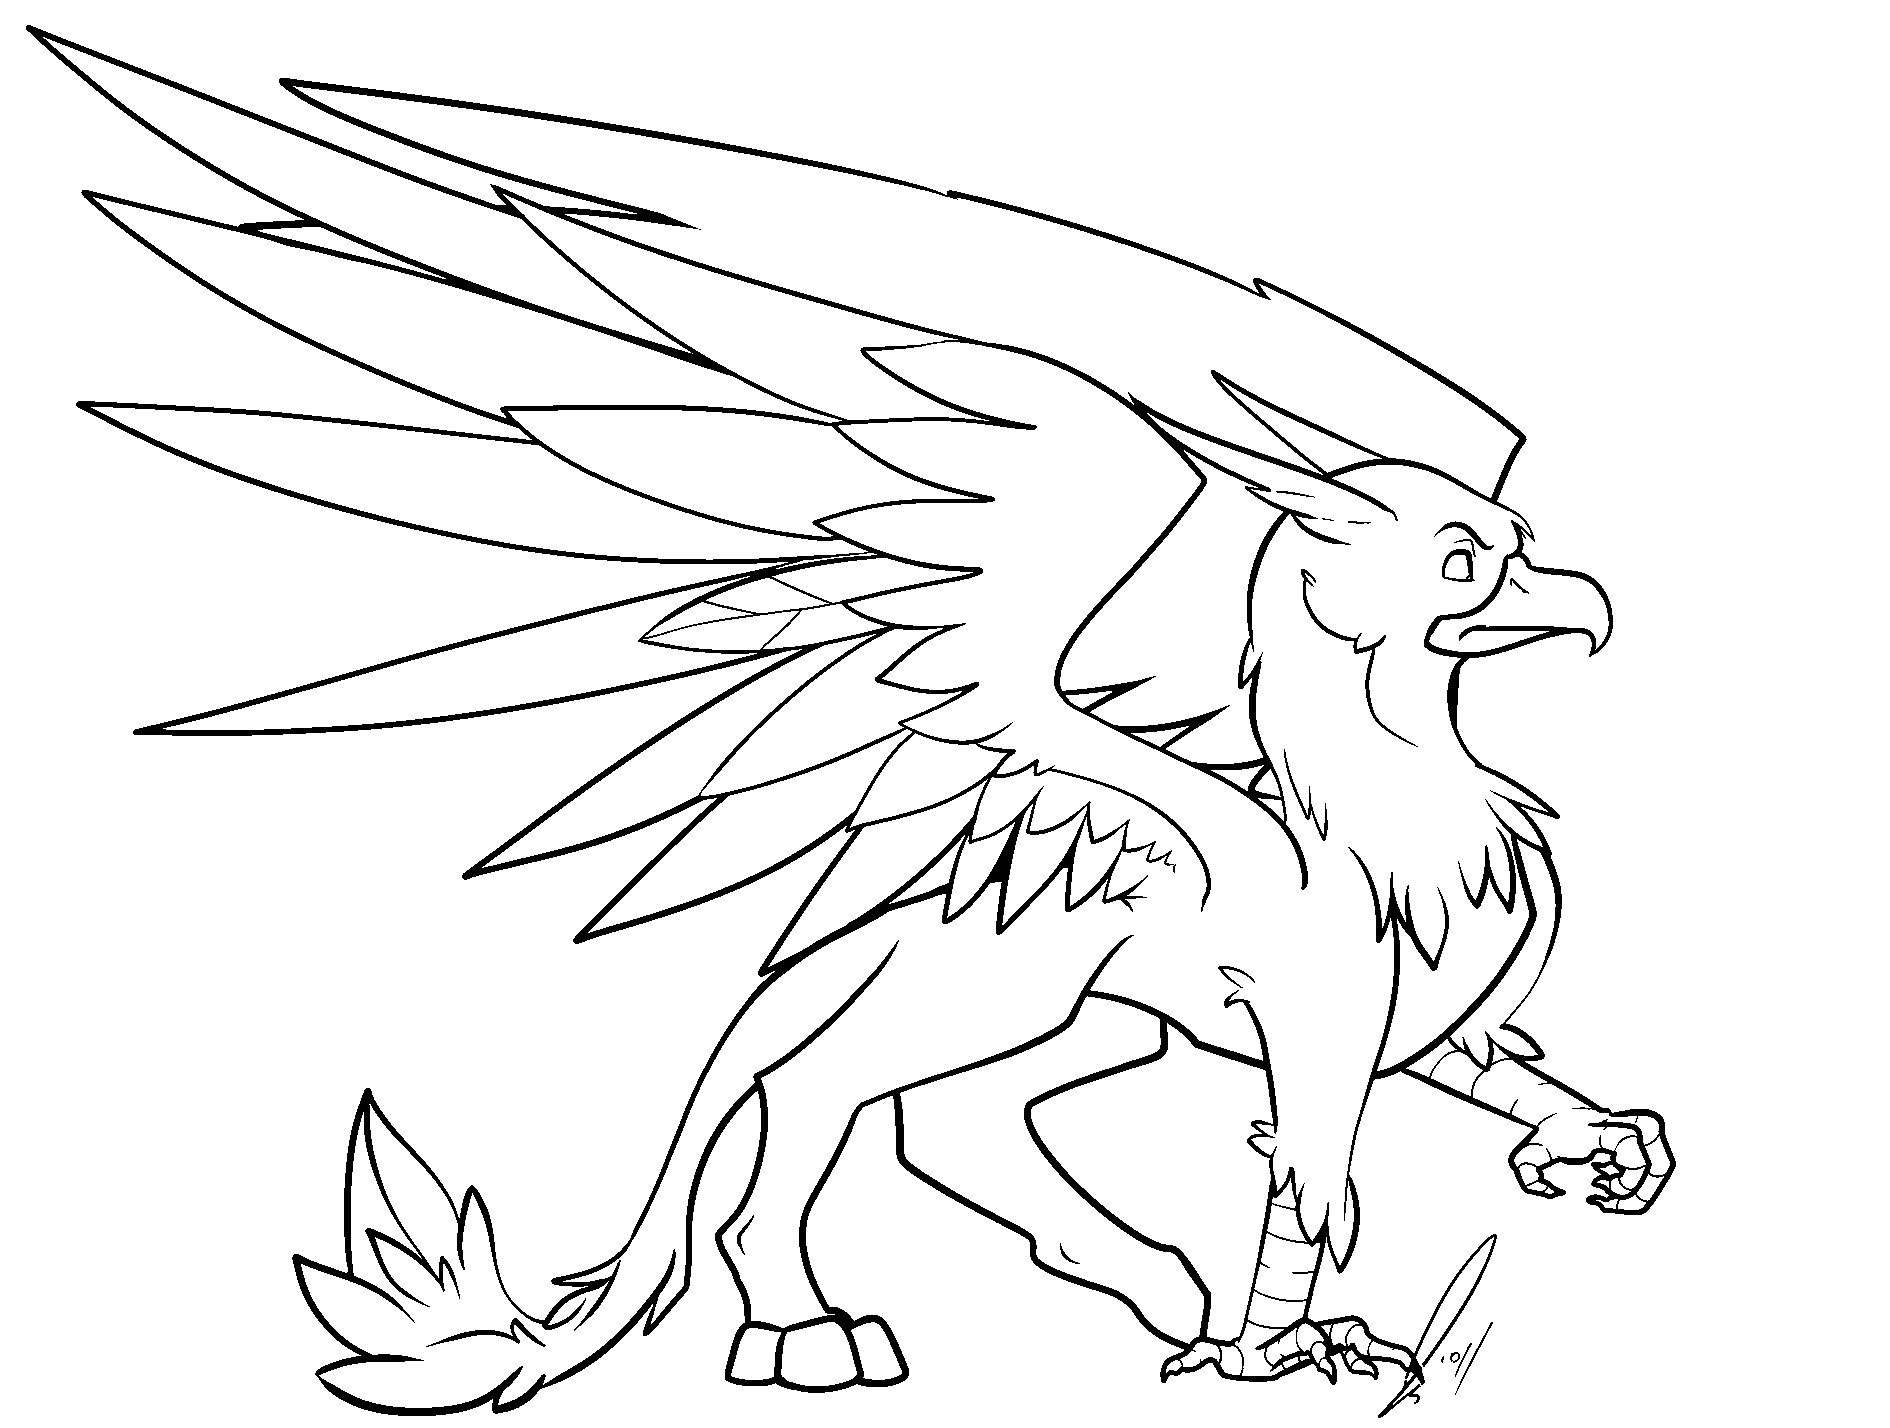 Line Drawing Artist Research : Griffin lines by jaclynonacloudlines on deviantart